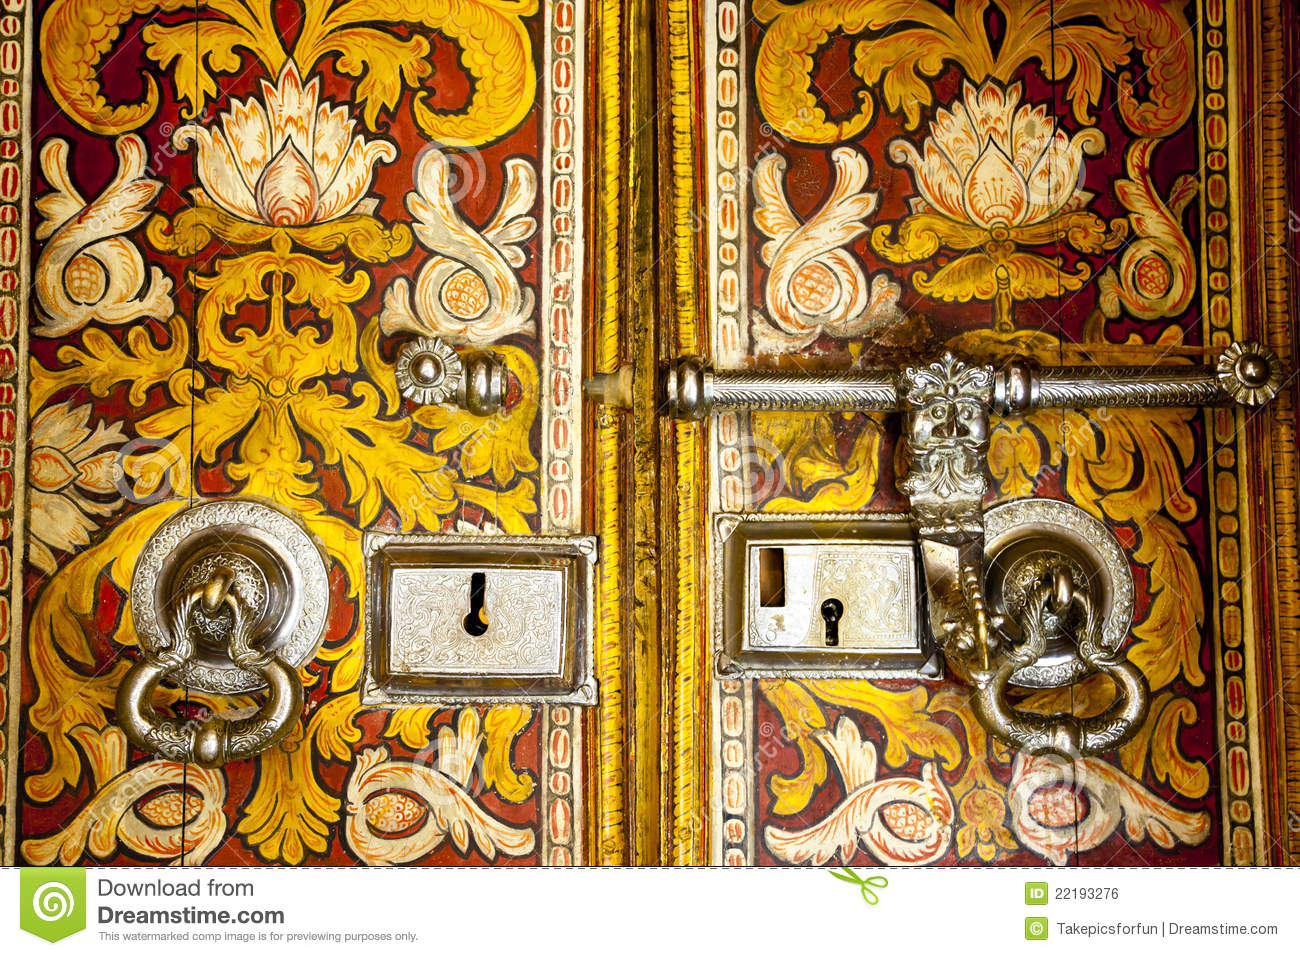 Door Designs Sri Lanka Photo Gallery Old Buddhist Temple Door In Sri Lanka Stock Photo Image